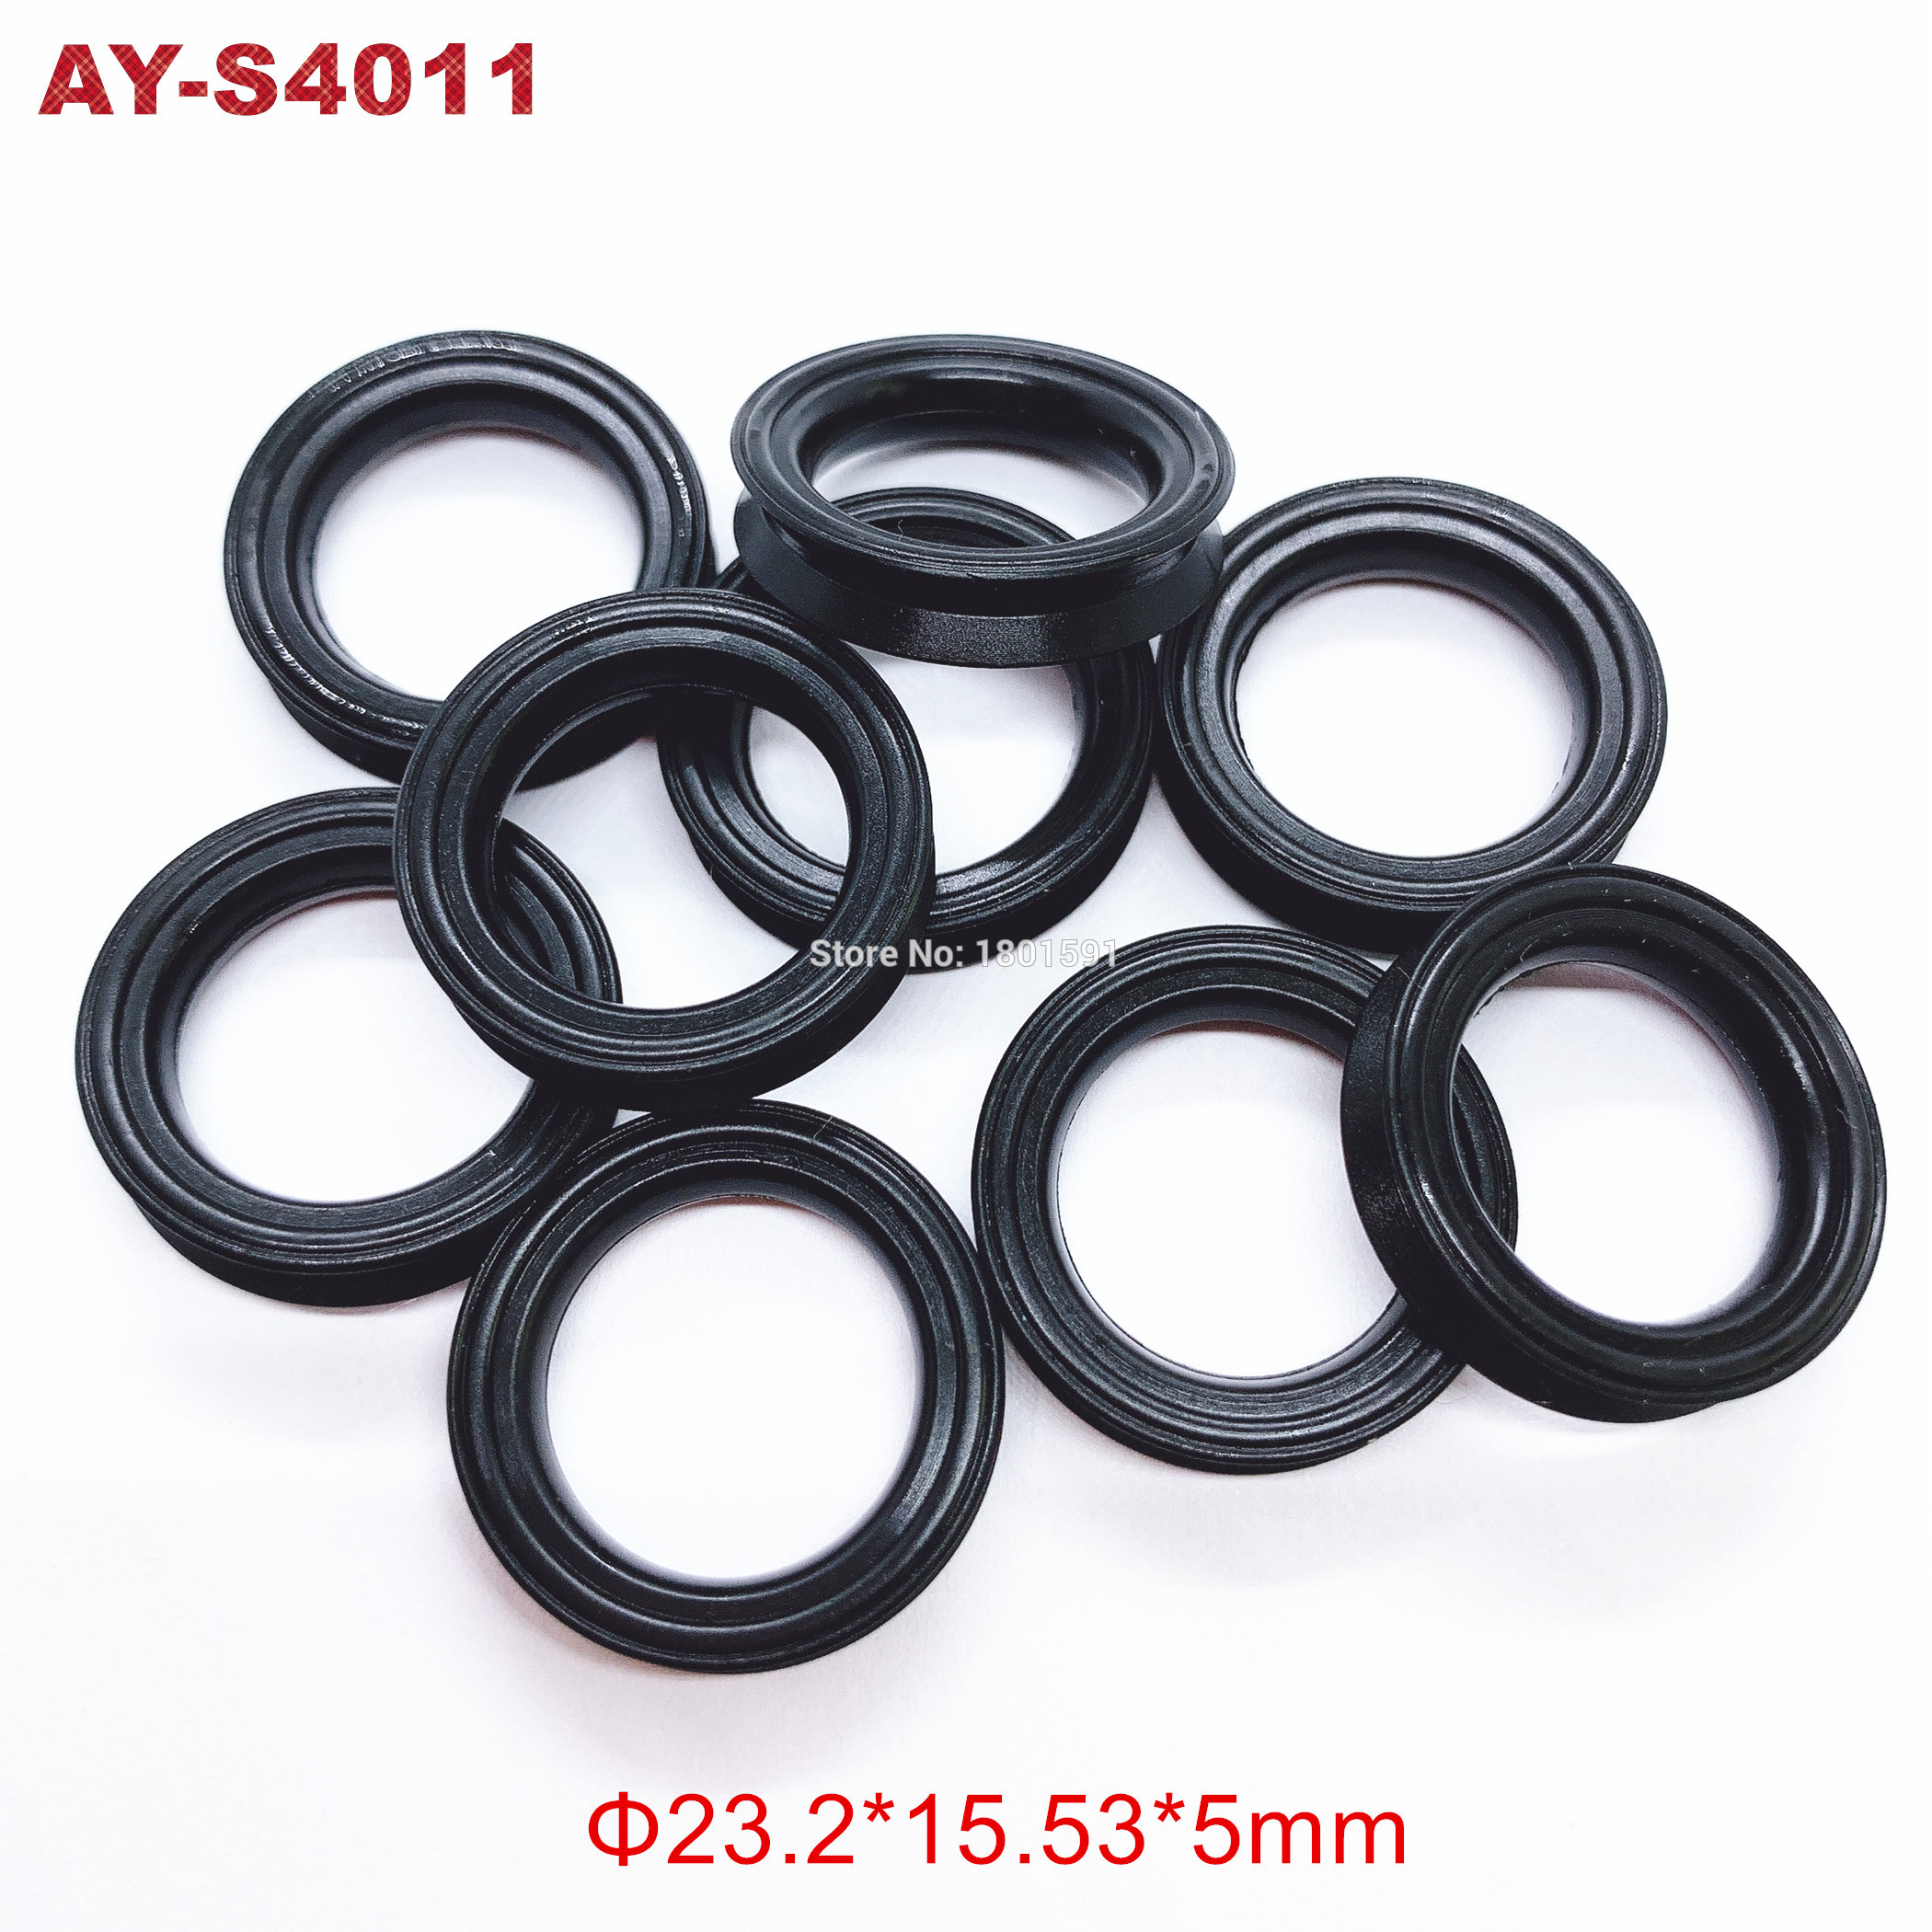 200pieces FKM Rubber Seals 23.2*15.5*5mm For Toyota Lexus Fuel Injector Repair Kits For Tundra(AY-S4011)